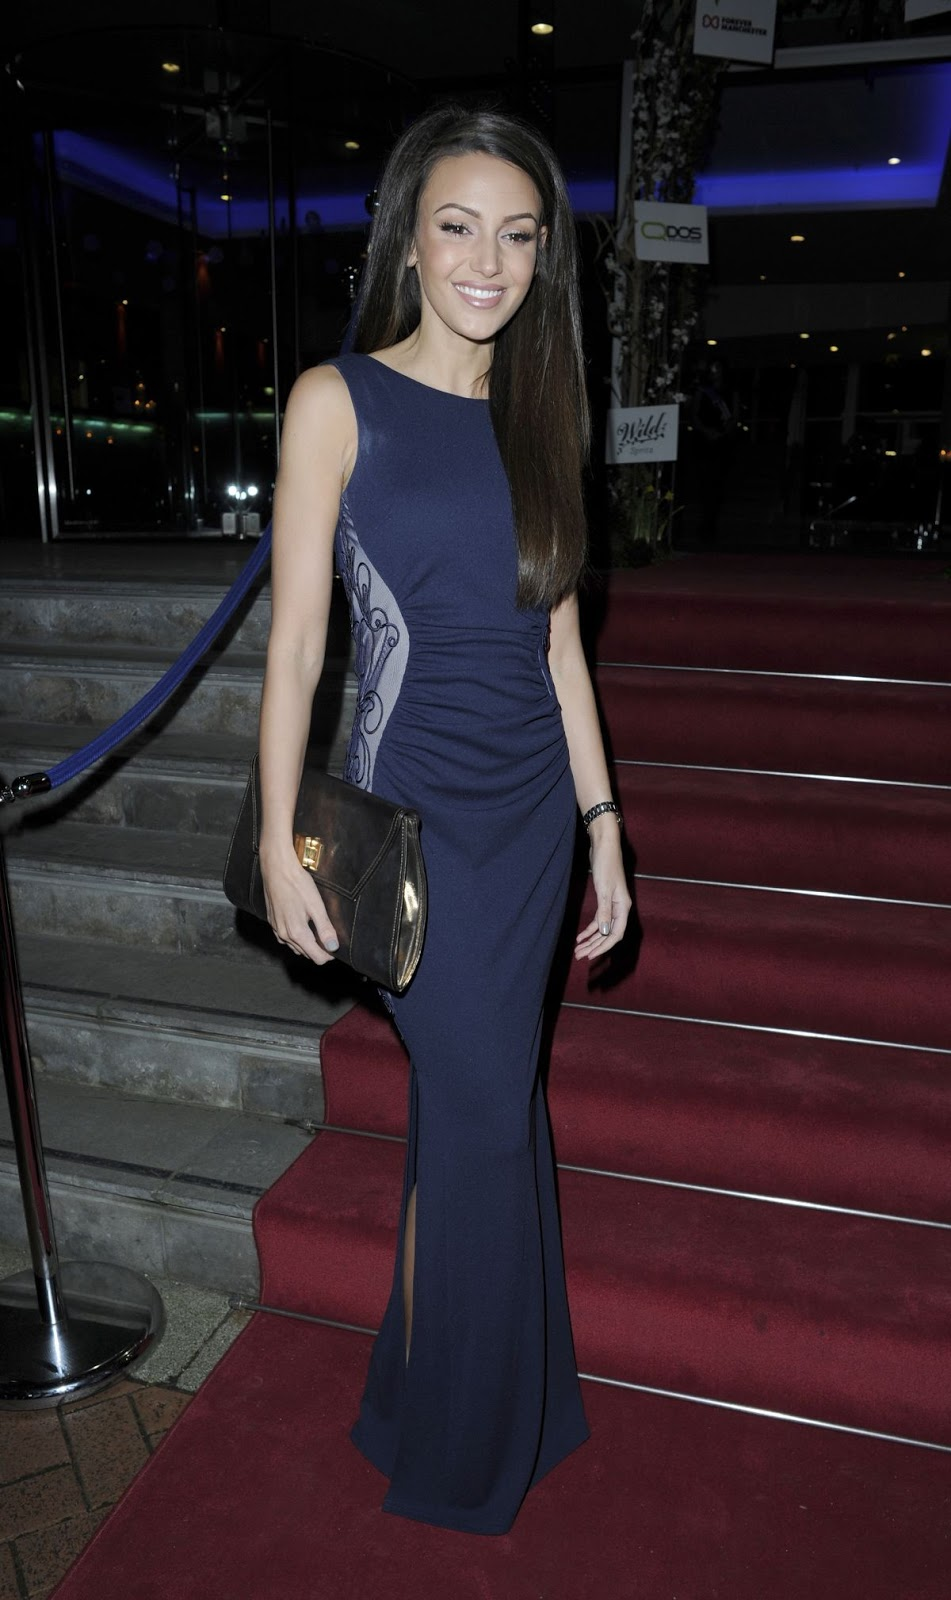 HD Photos of Michelle Keegan At The Mirror Ball In Manchester